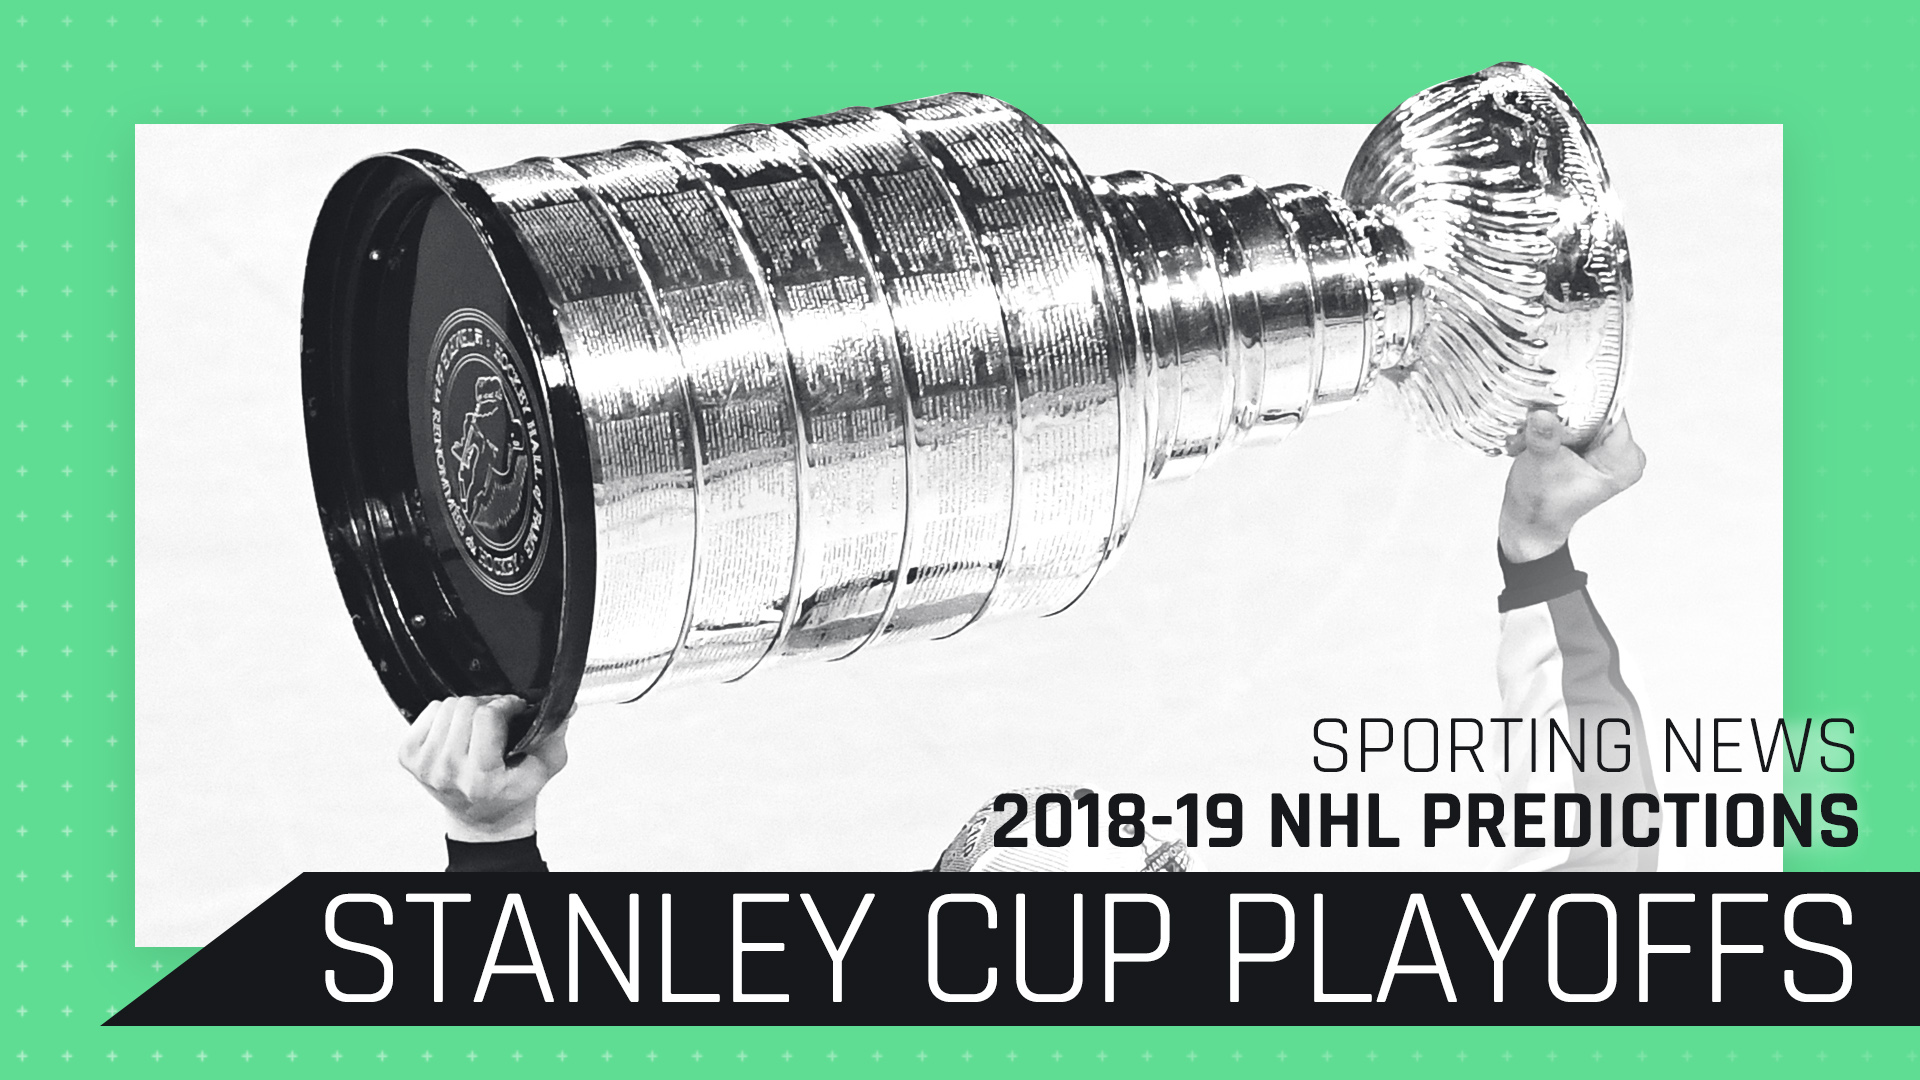 NHL predictions for 2018-19: Final standings, playoff projections